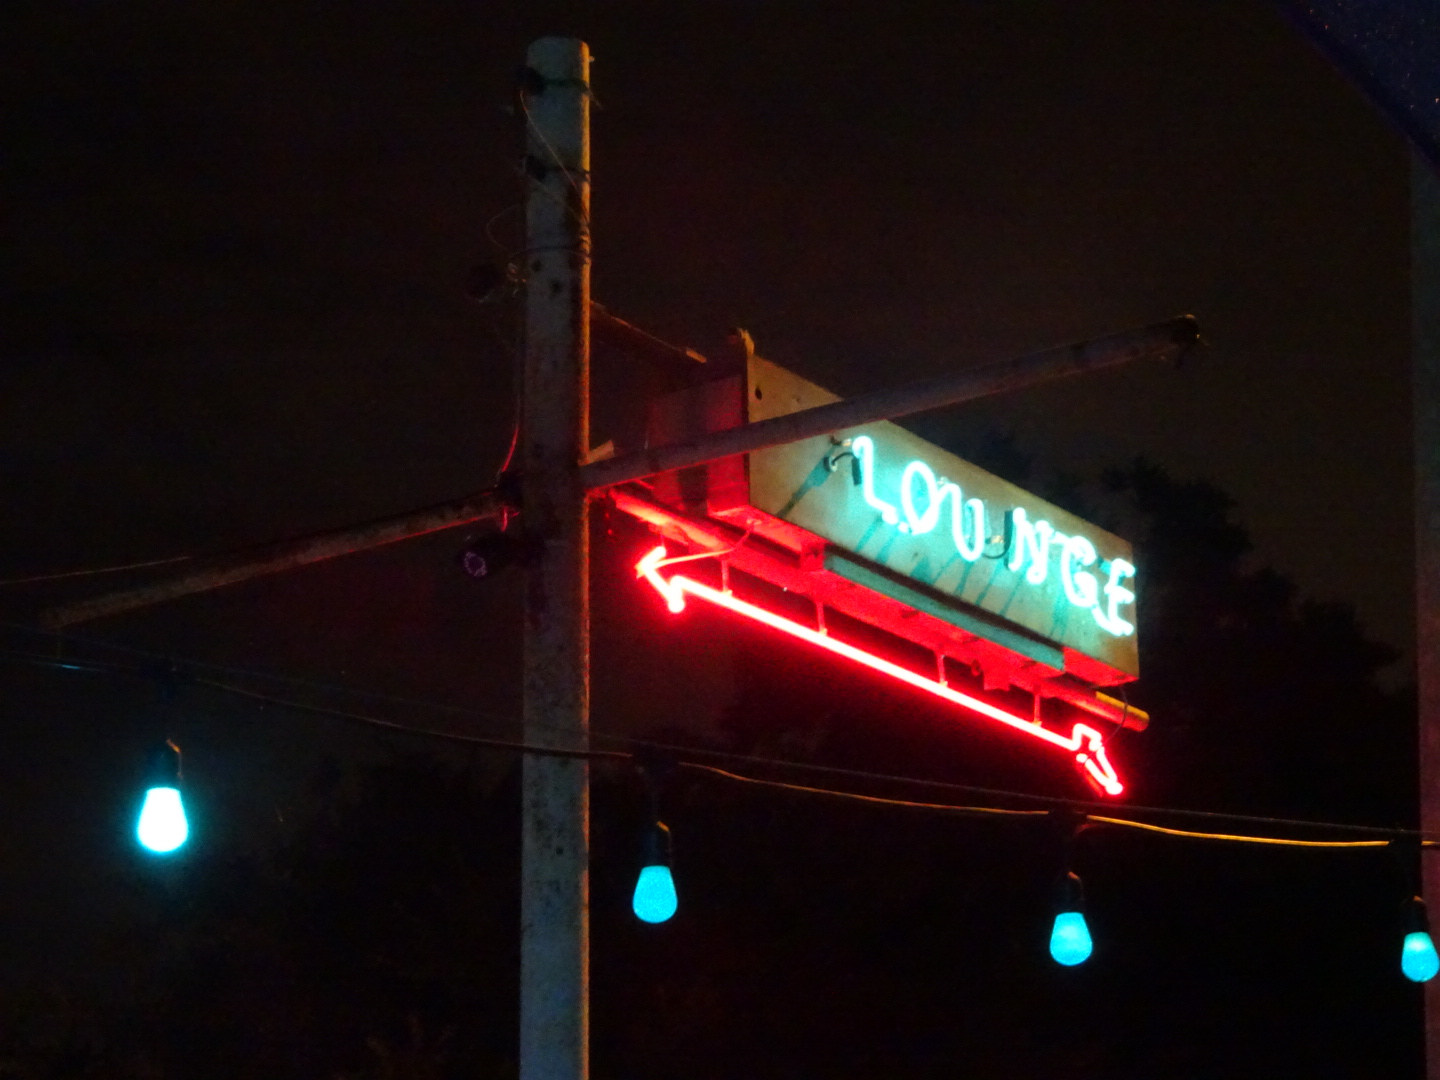 Follow the neon signs to the louge.